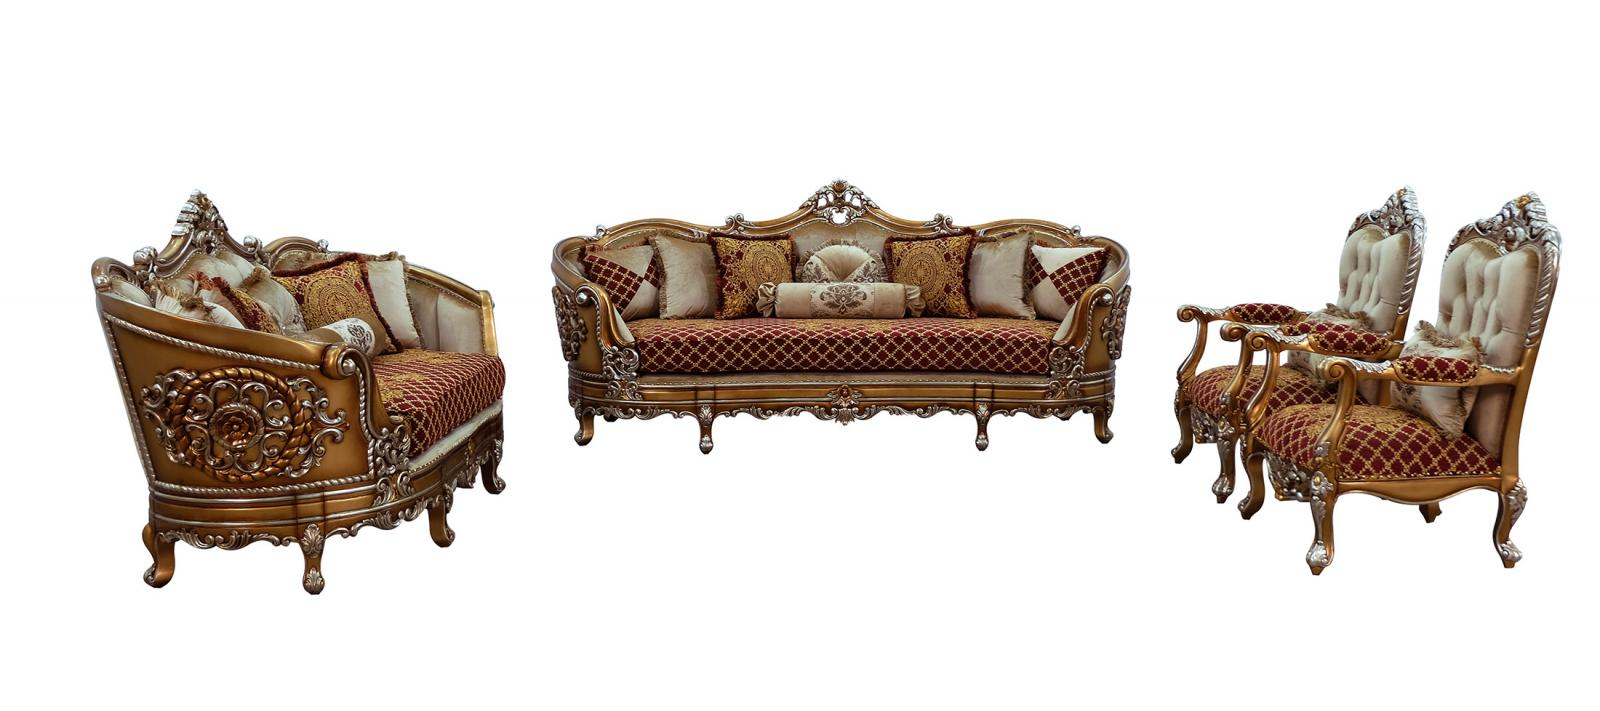 Classic  Traditional Gold  Sand   Red Wood  Solid Hardwood and Fabric Sofa Set EUROPEAN FURNITURE 35554-S-Set-4